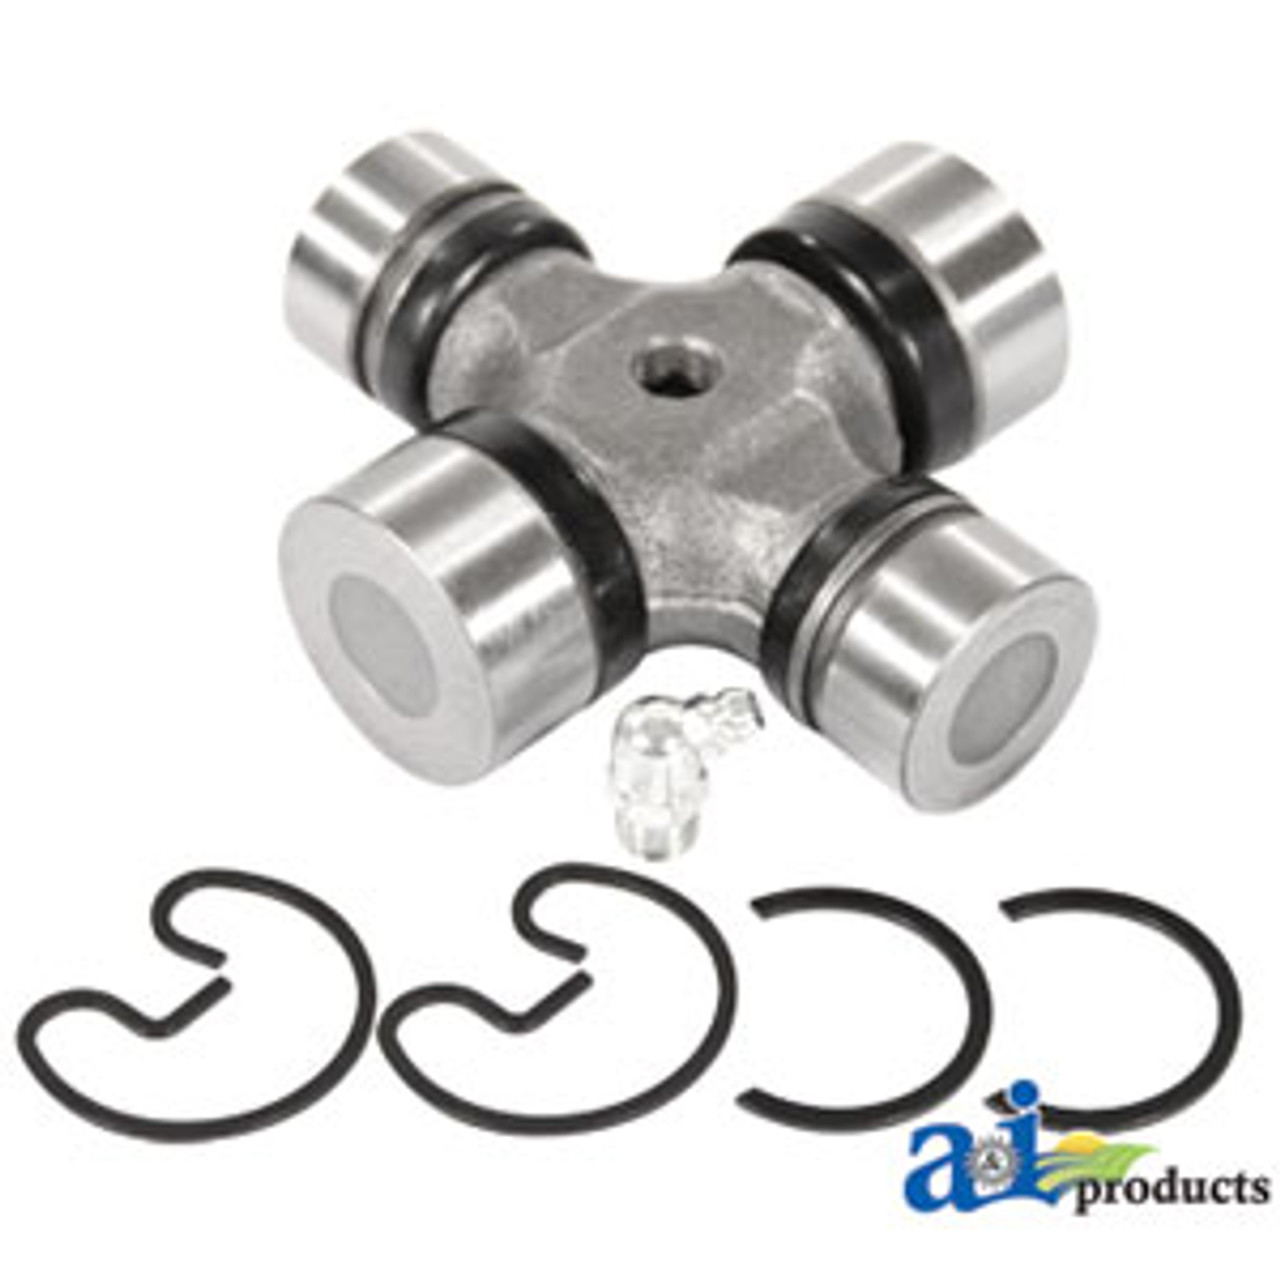 A/&I PRODUCTS A-D352000 CROSS AND BEARING KIT TL550